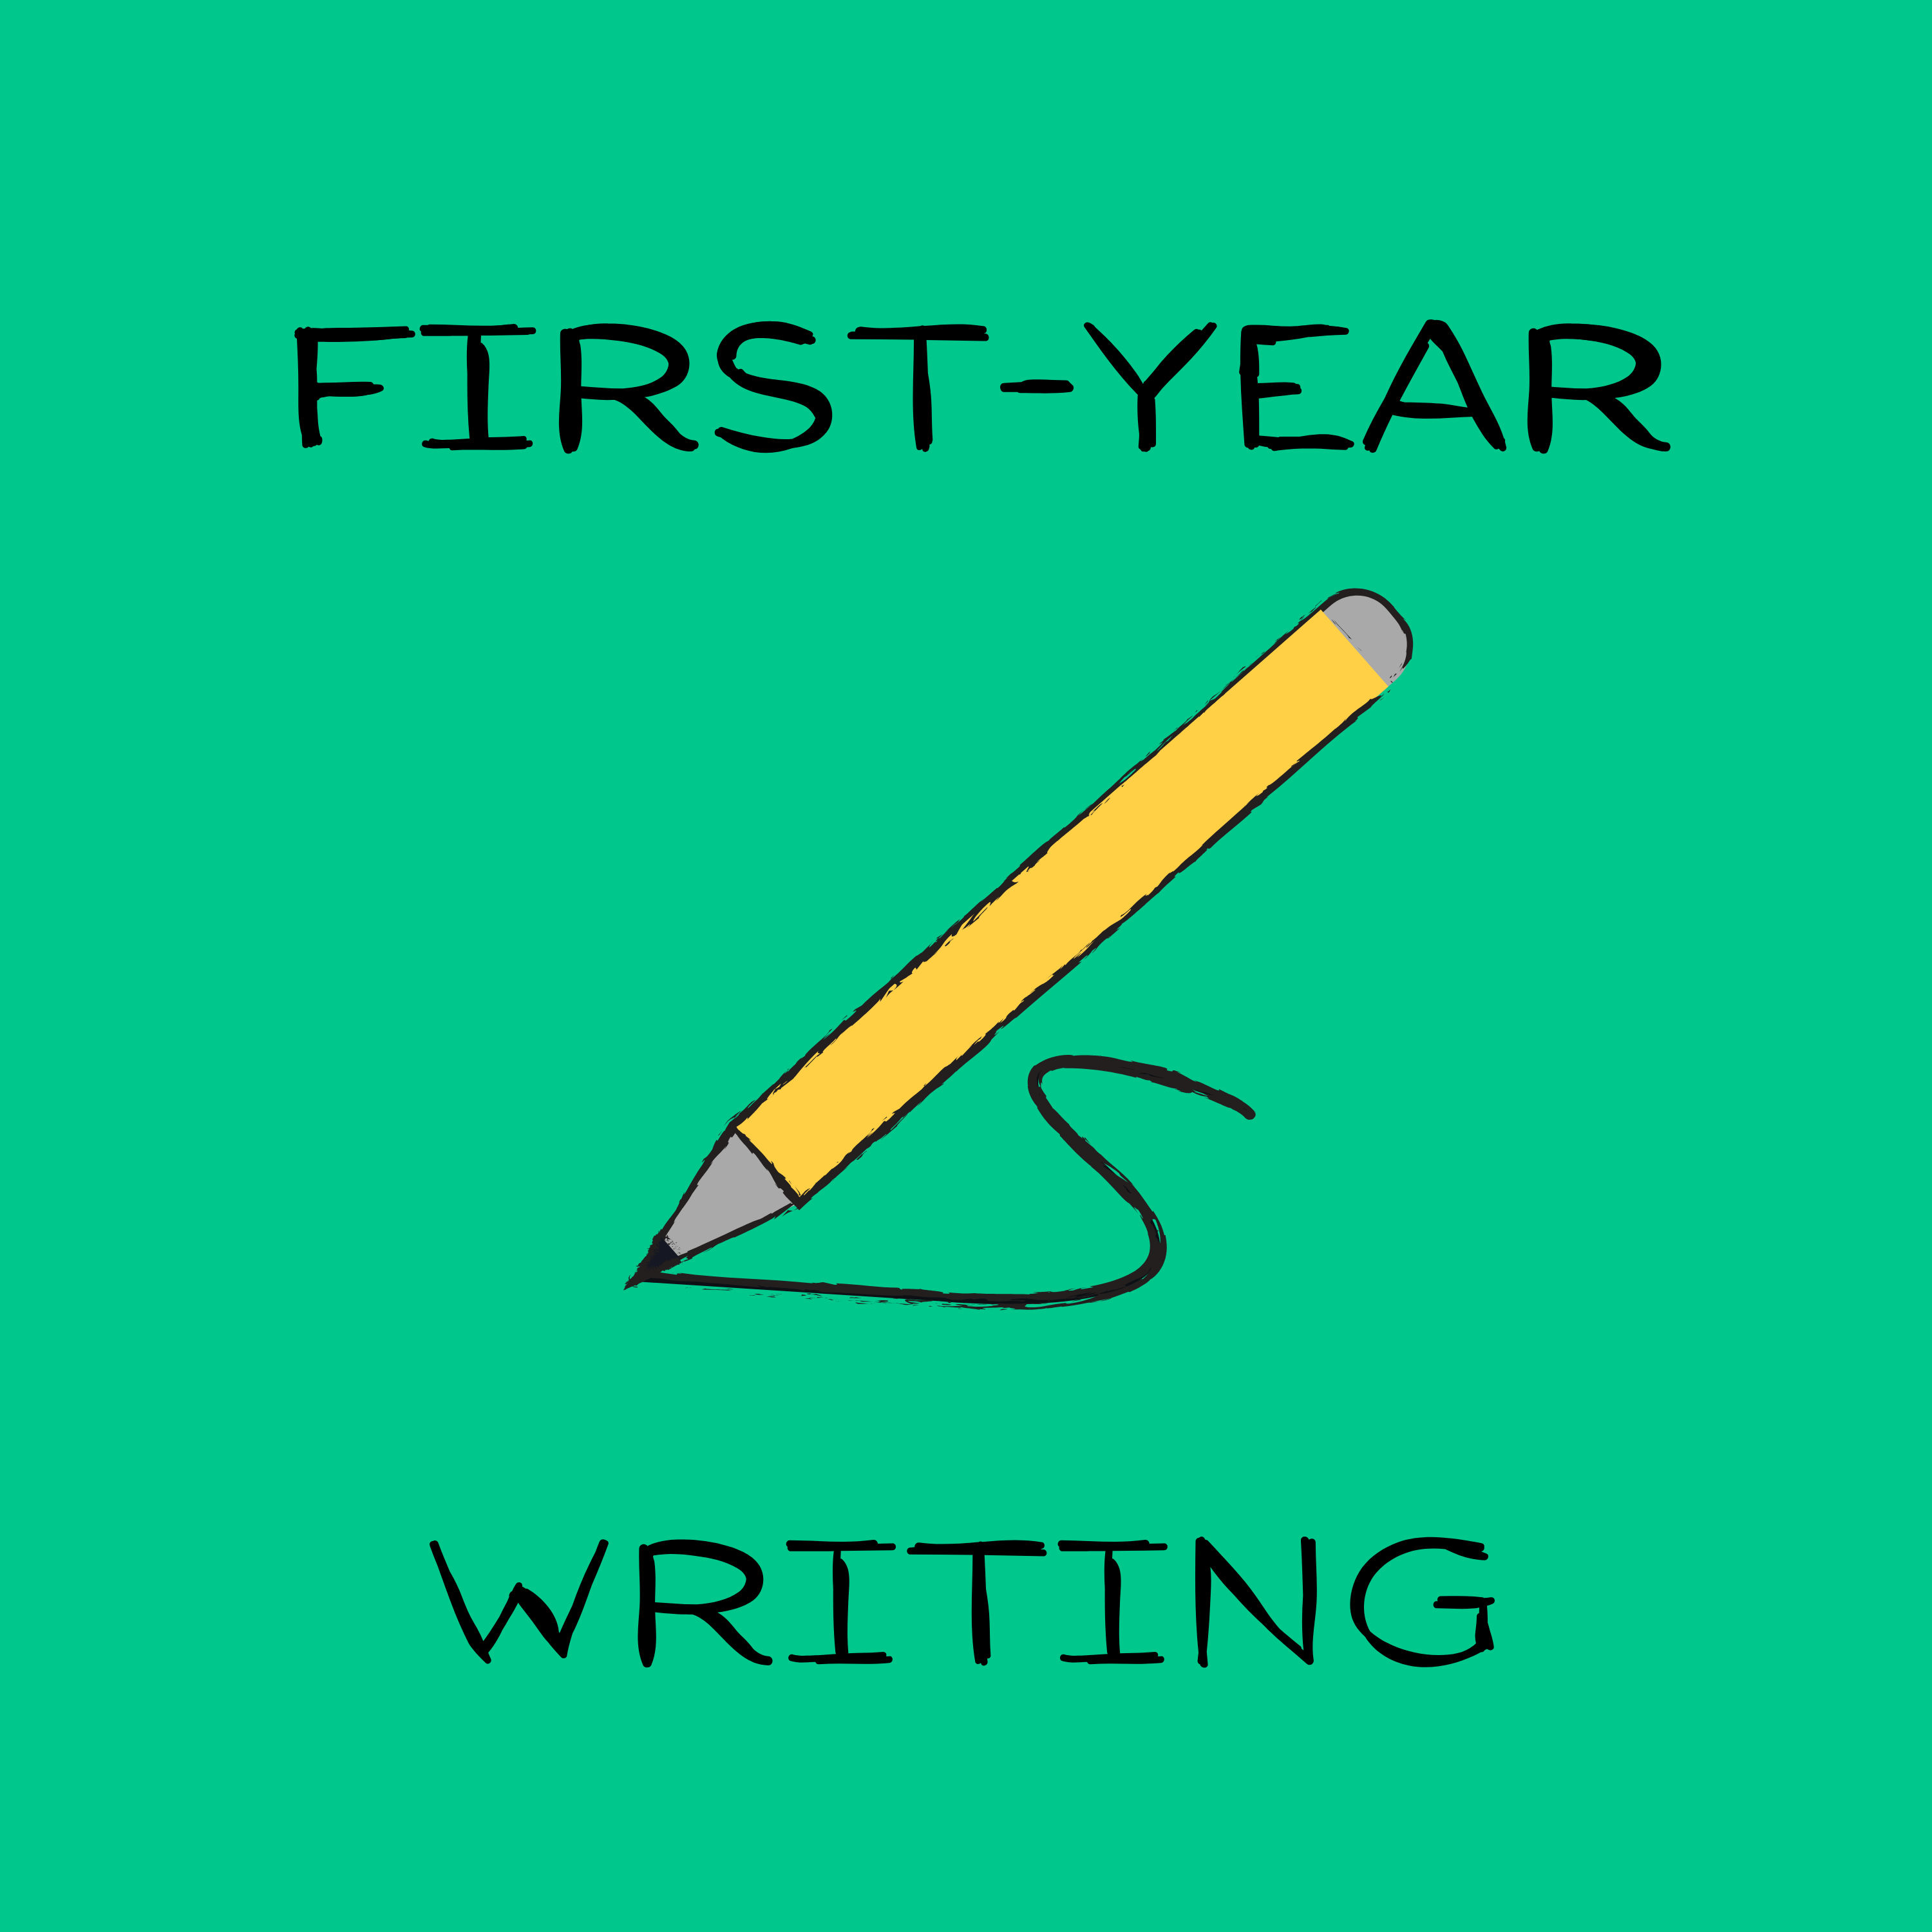 First-Year Writing